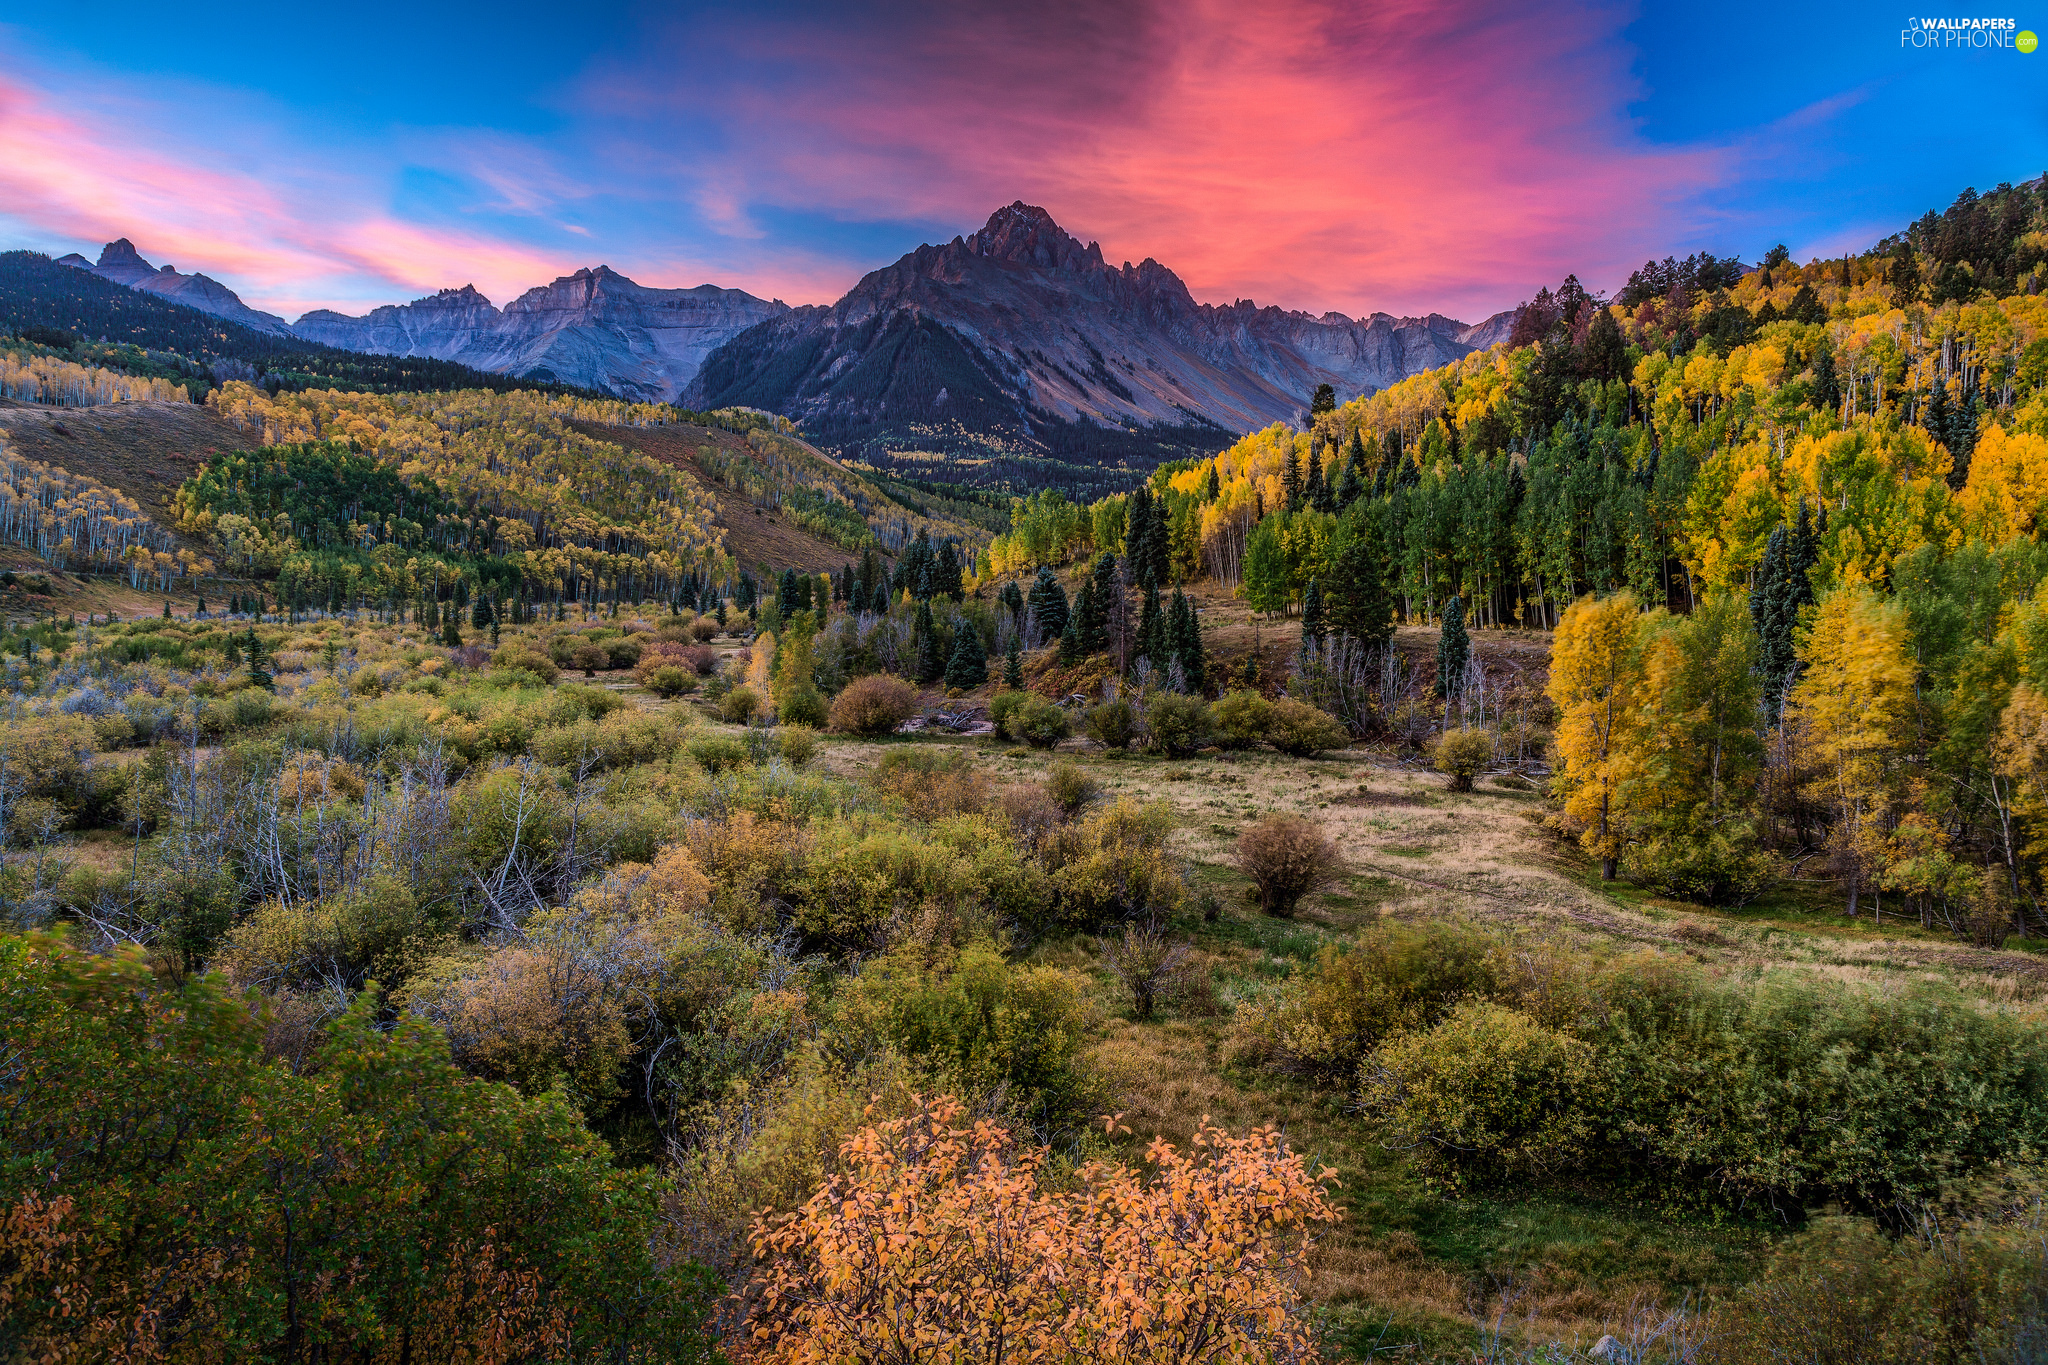 San Juan Mountains, Colorado, VEGETATION, San Juan County, The United States, forest, Great Sunsets